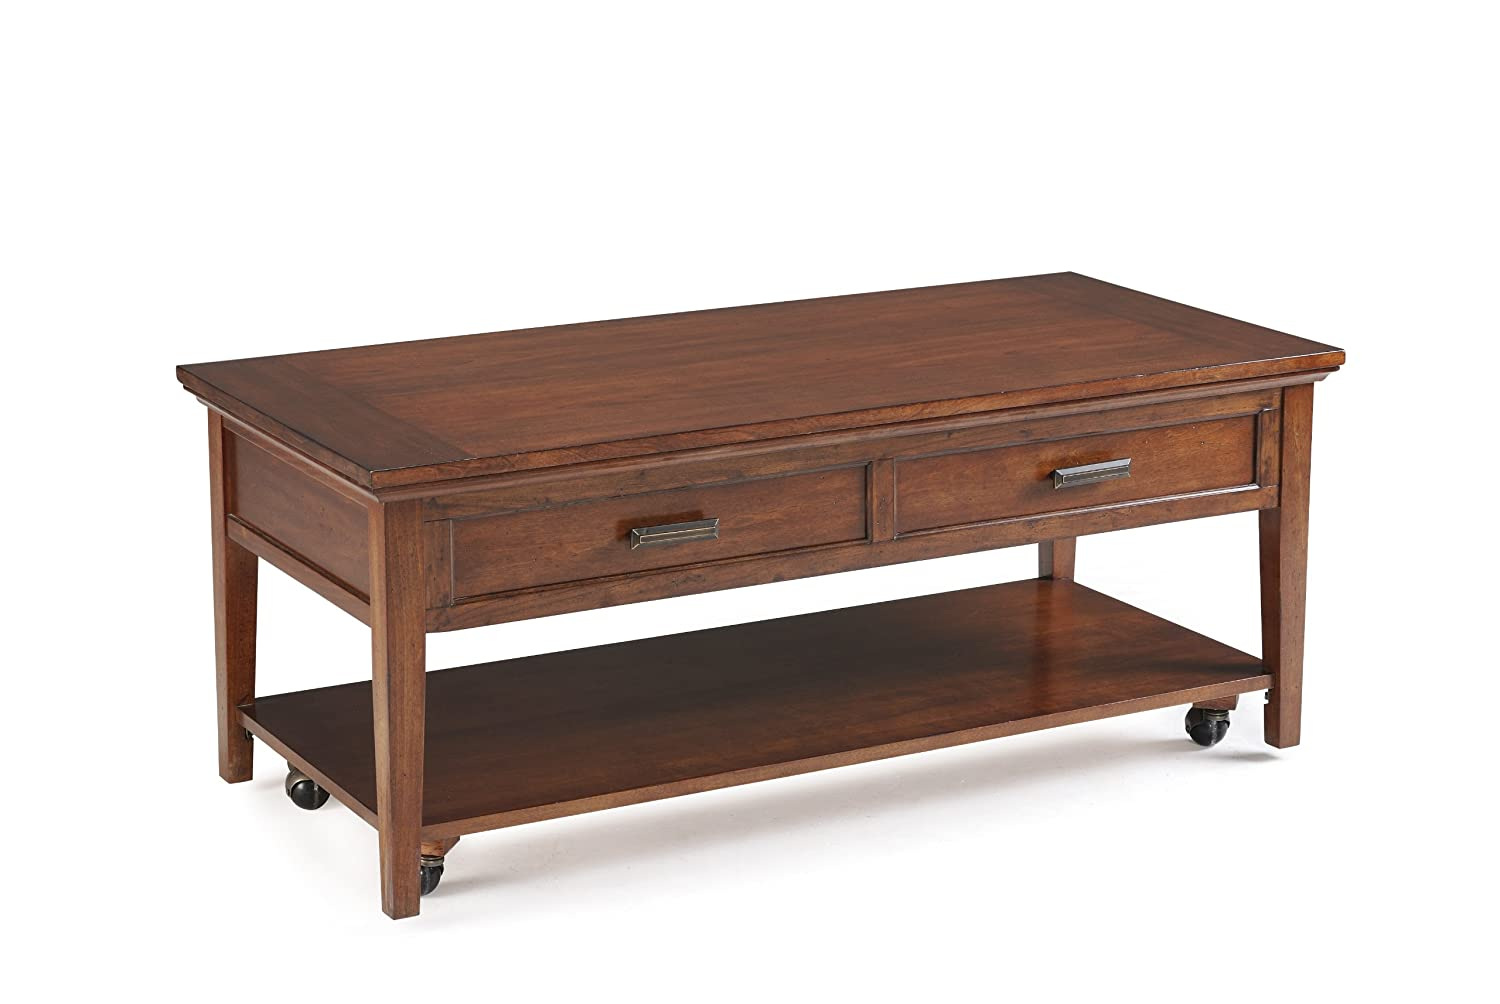 Amazon Com Magnussen Harbor Bay Wood Starter Cocktail Table Kitchen Dining